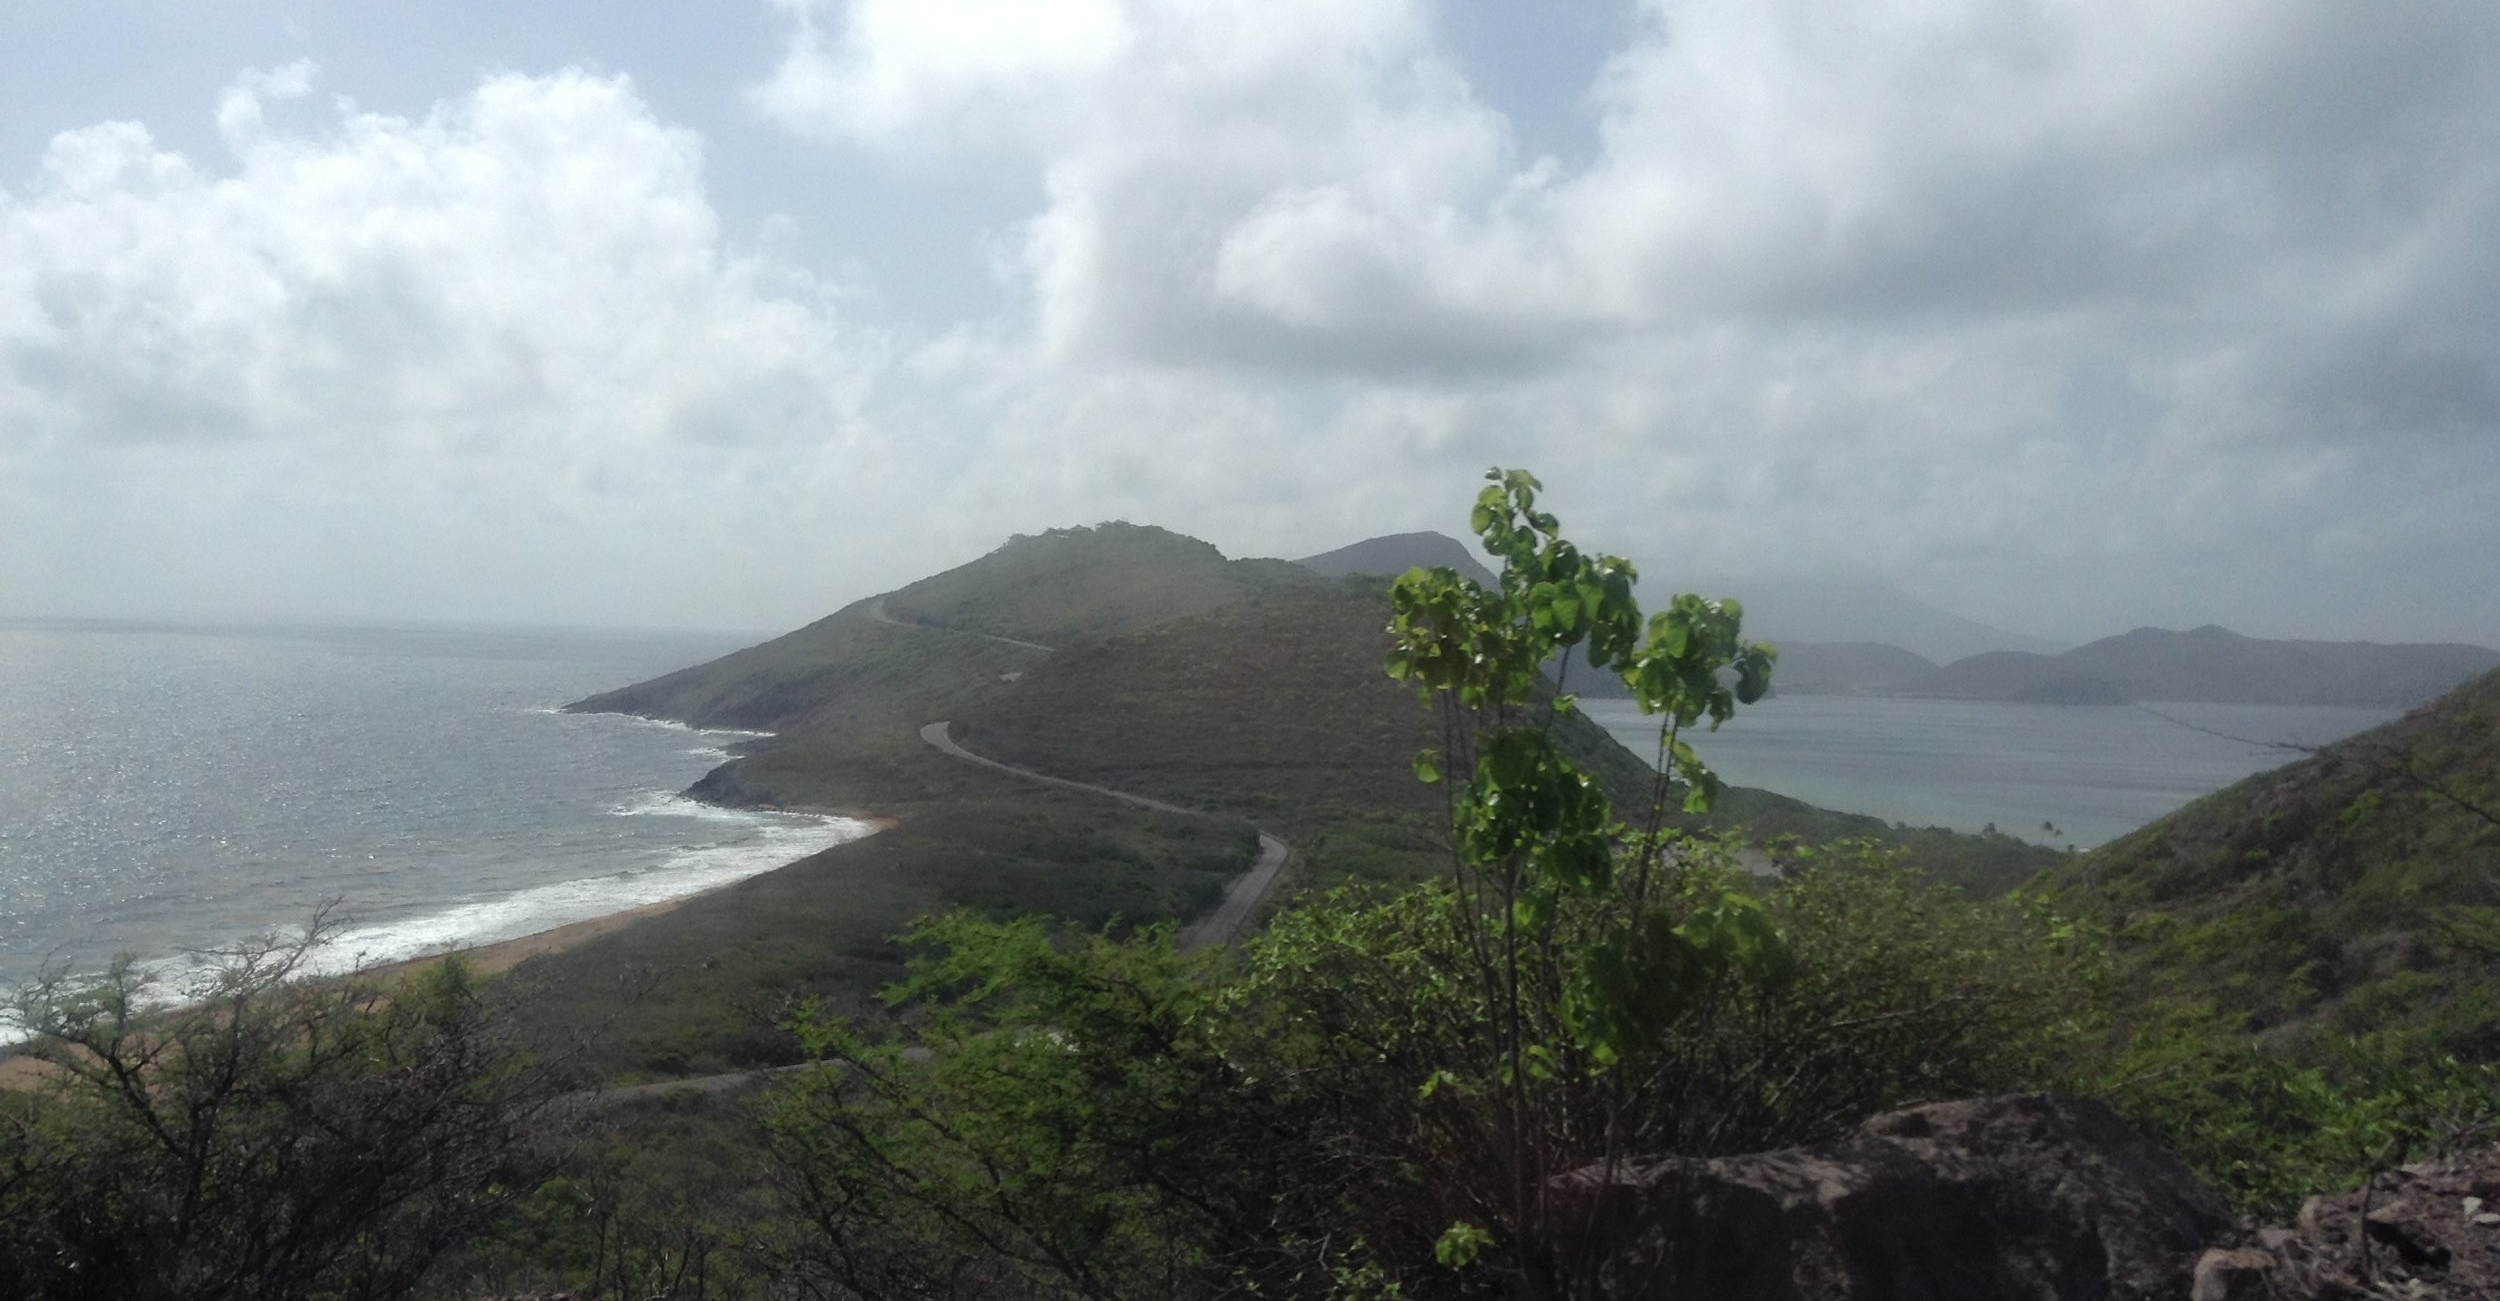 Heading down the spine of St. Kitts